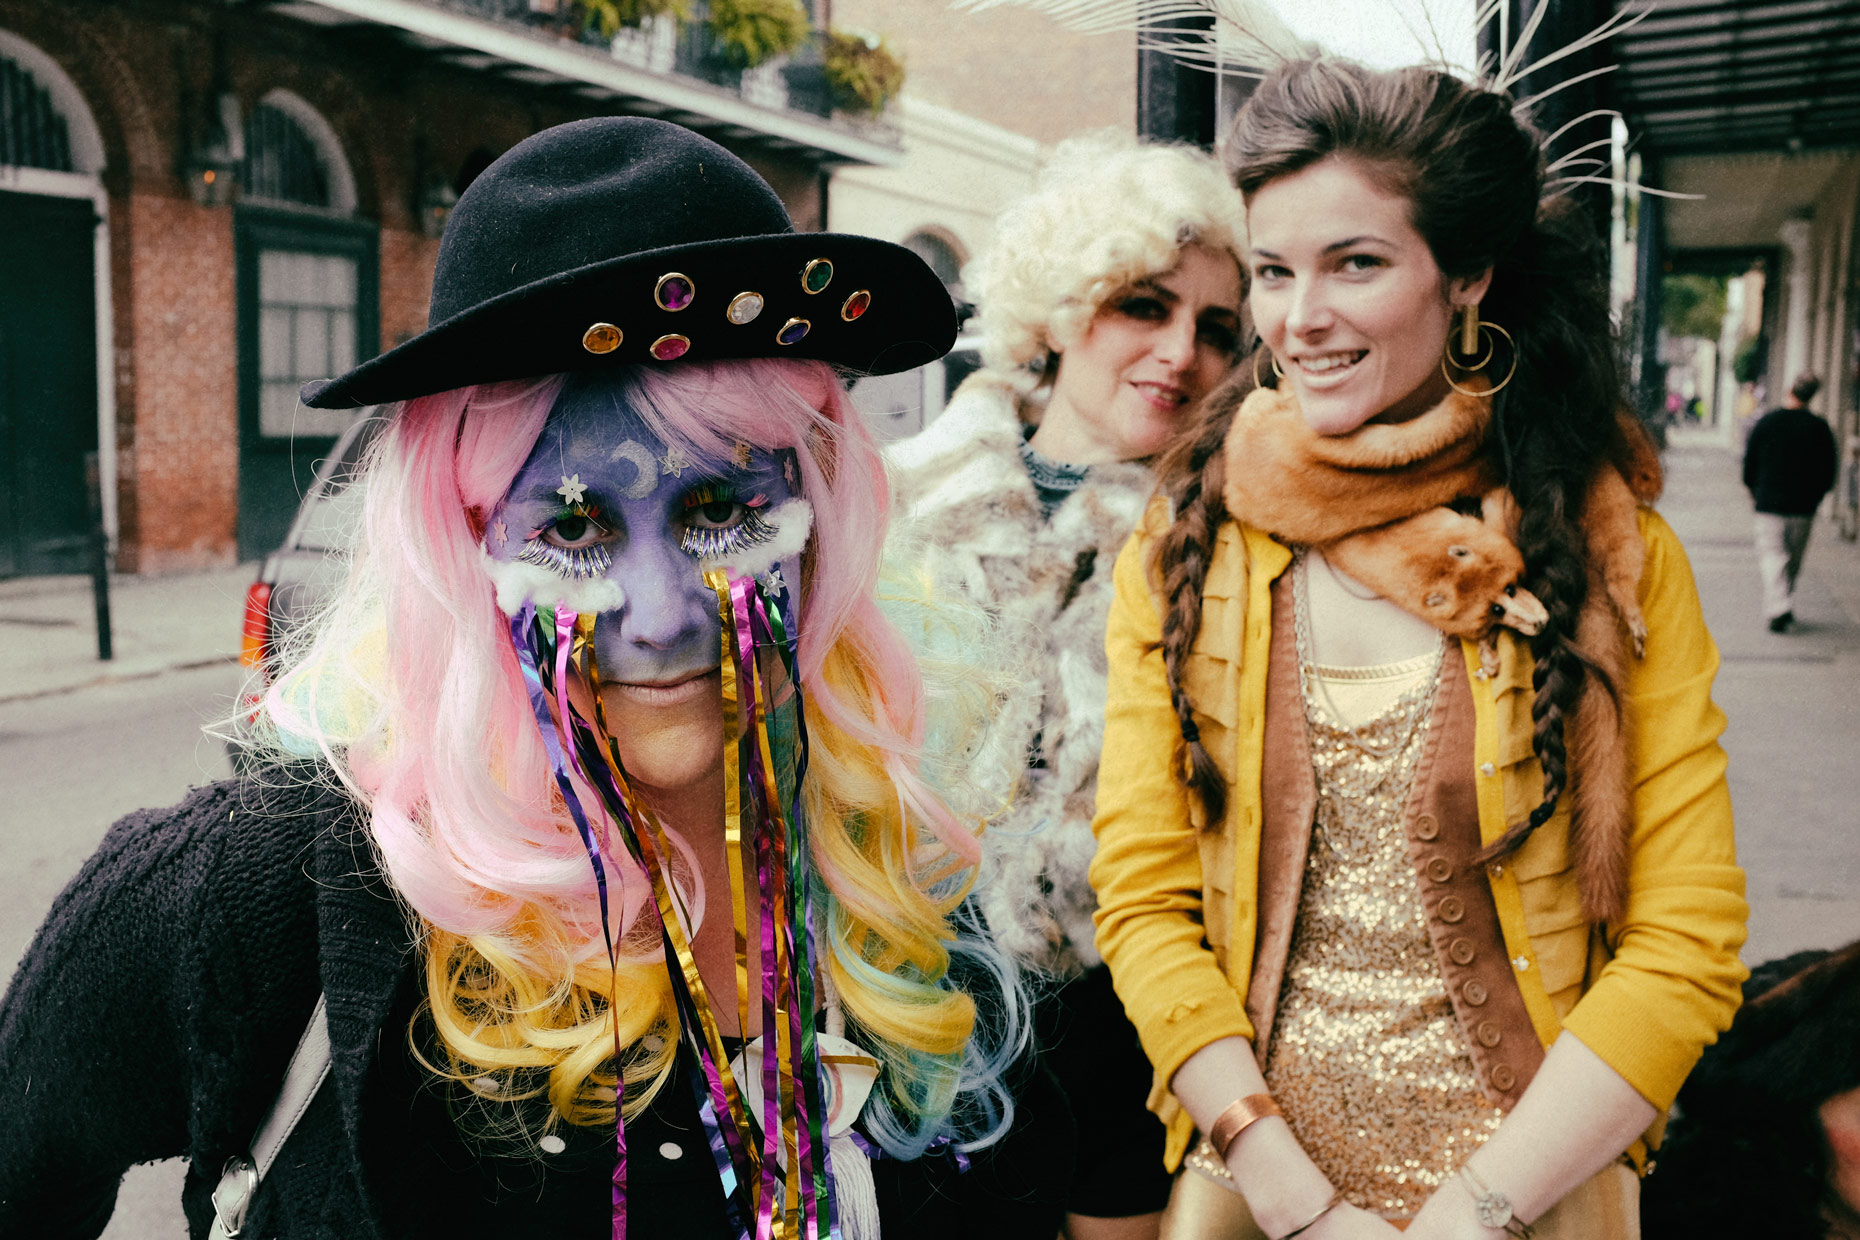 Mardis Gras girls in New Orleans by photographer Kevin Brown